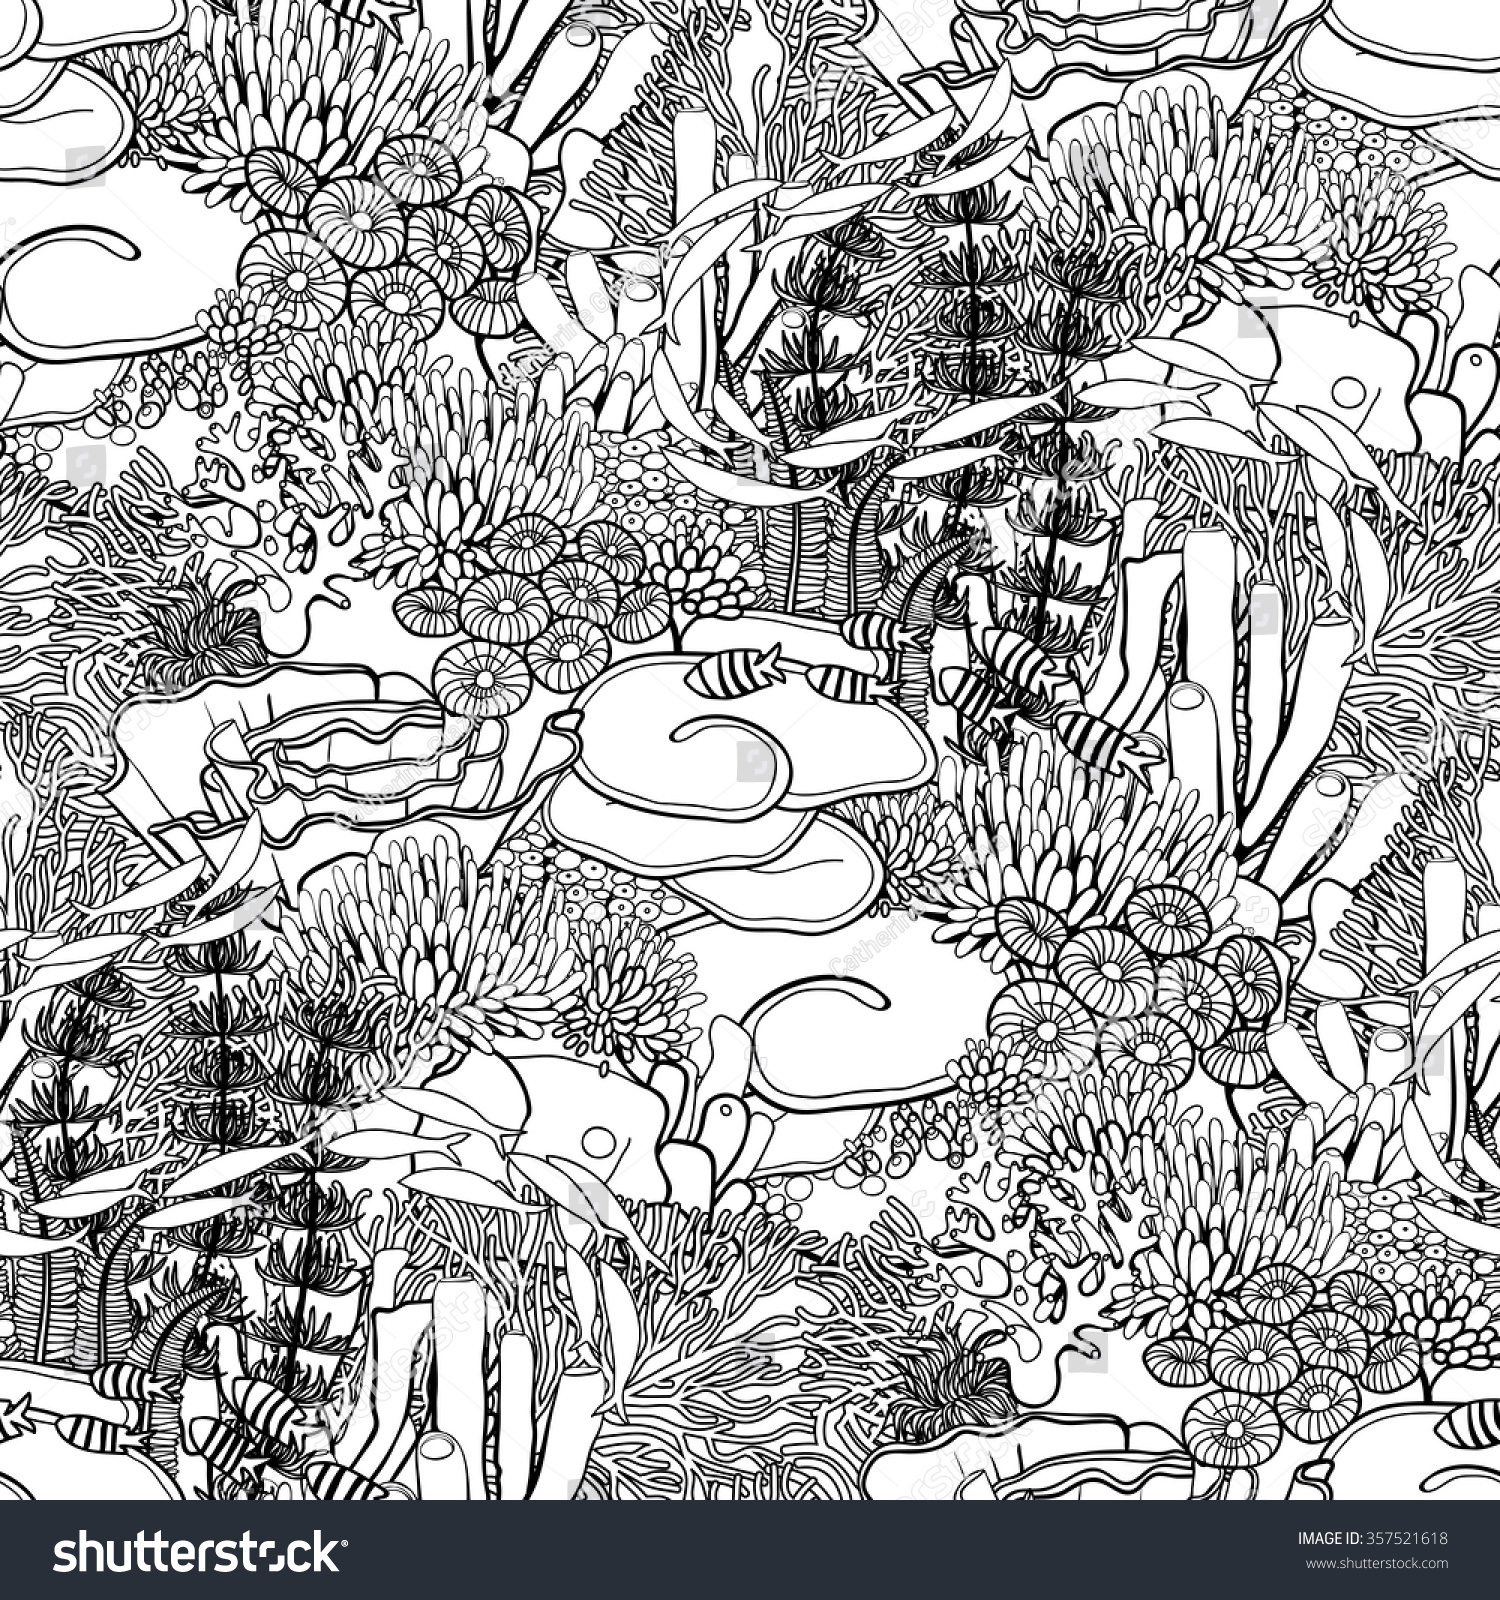 coral reef line art style on stock vector 357521618 shutterstock